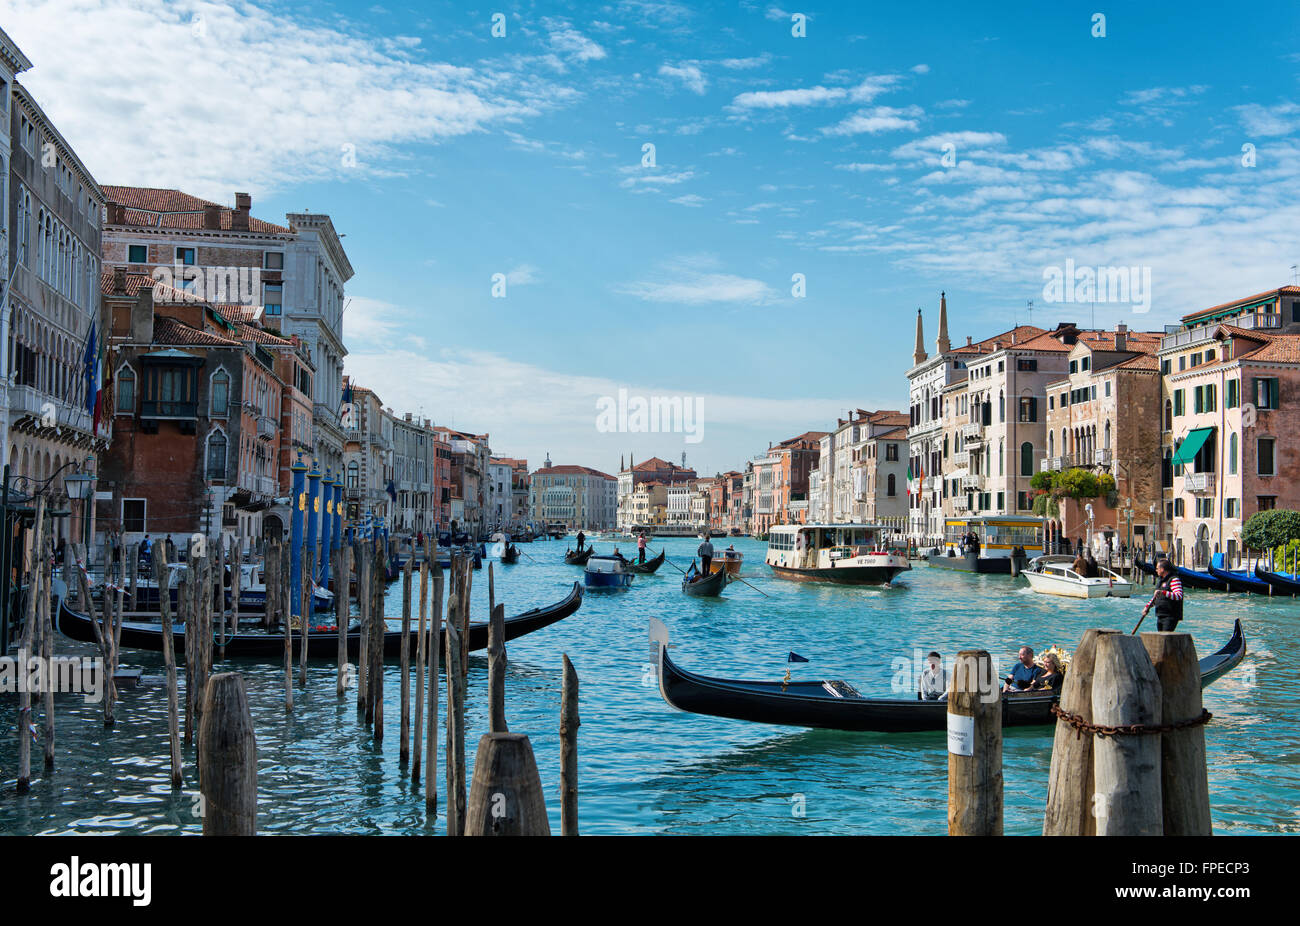 Boat traffic on the Grand Canal, Venice, with gondolas, private craft and a vaporetto or water bus passing old historical - Stock Image